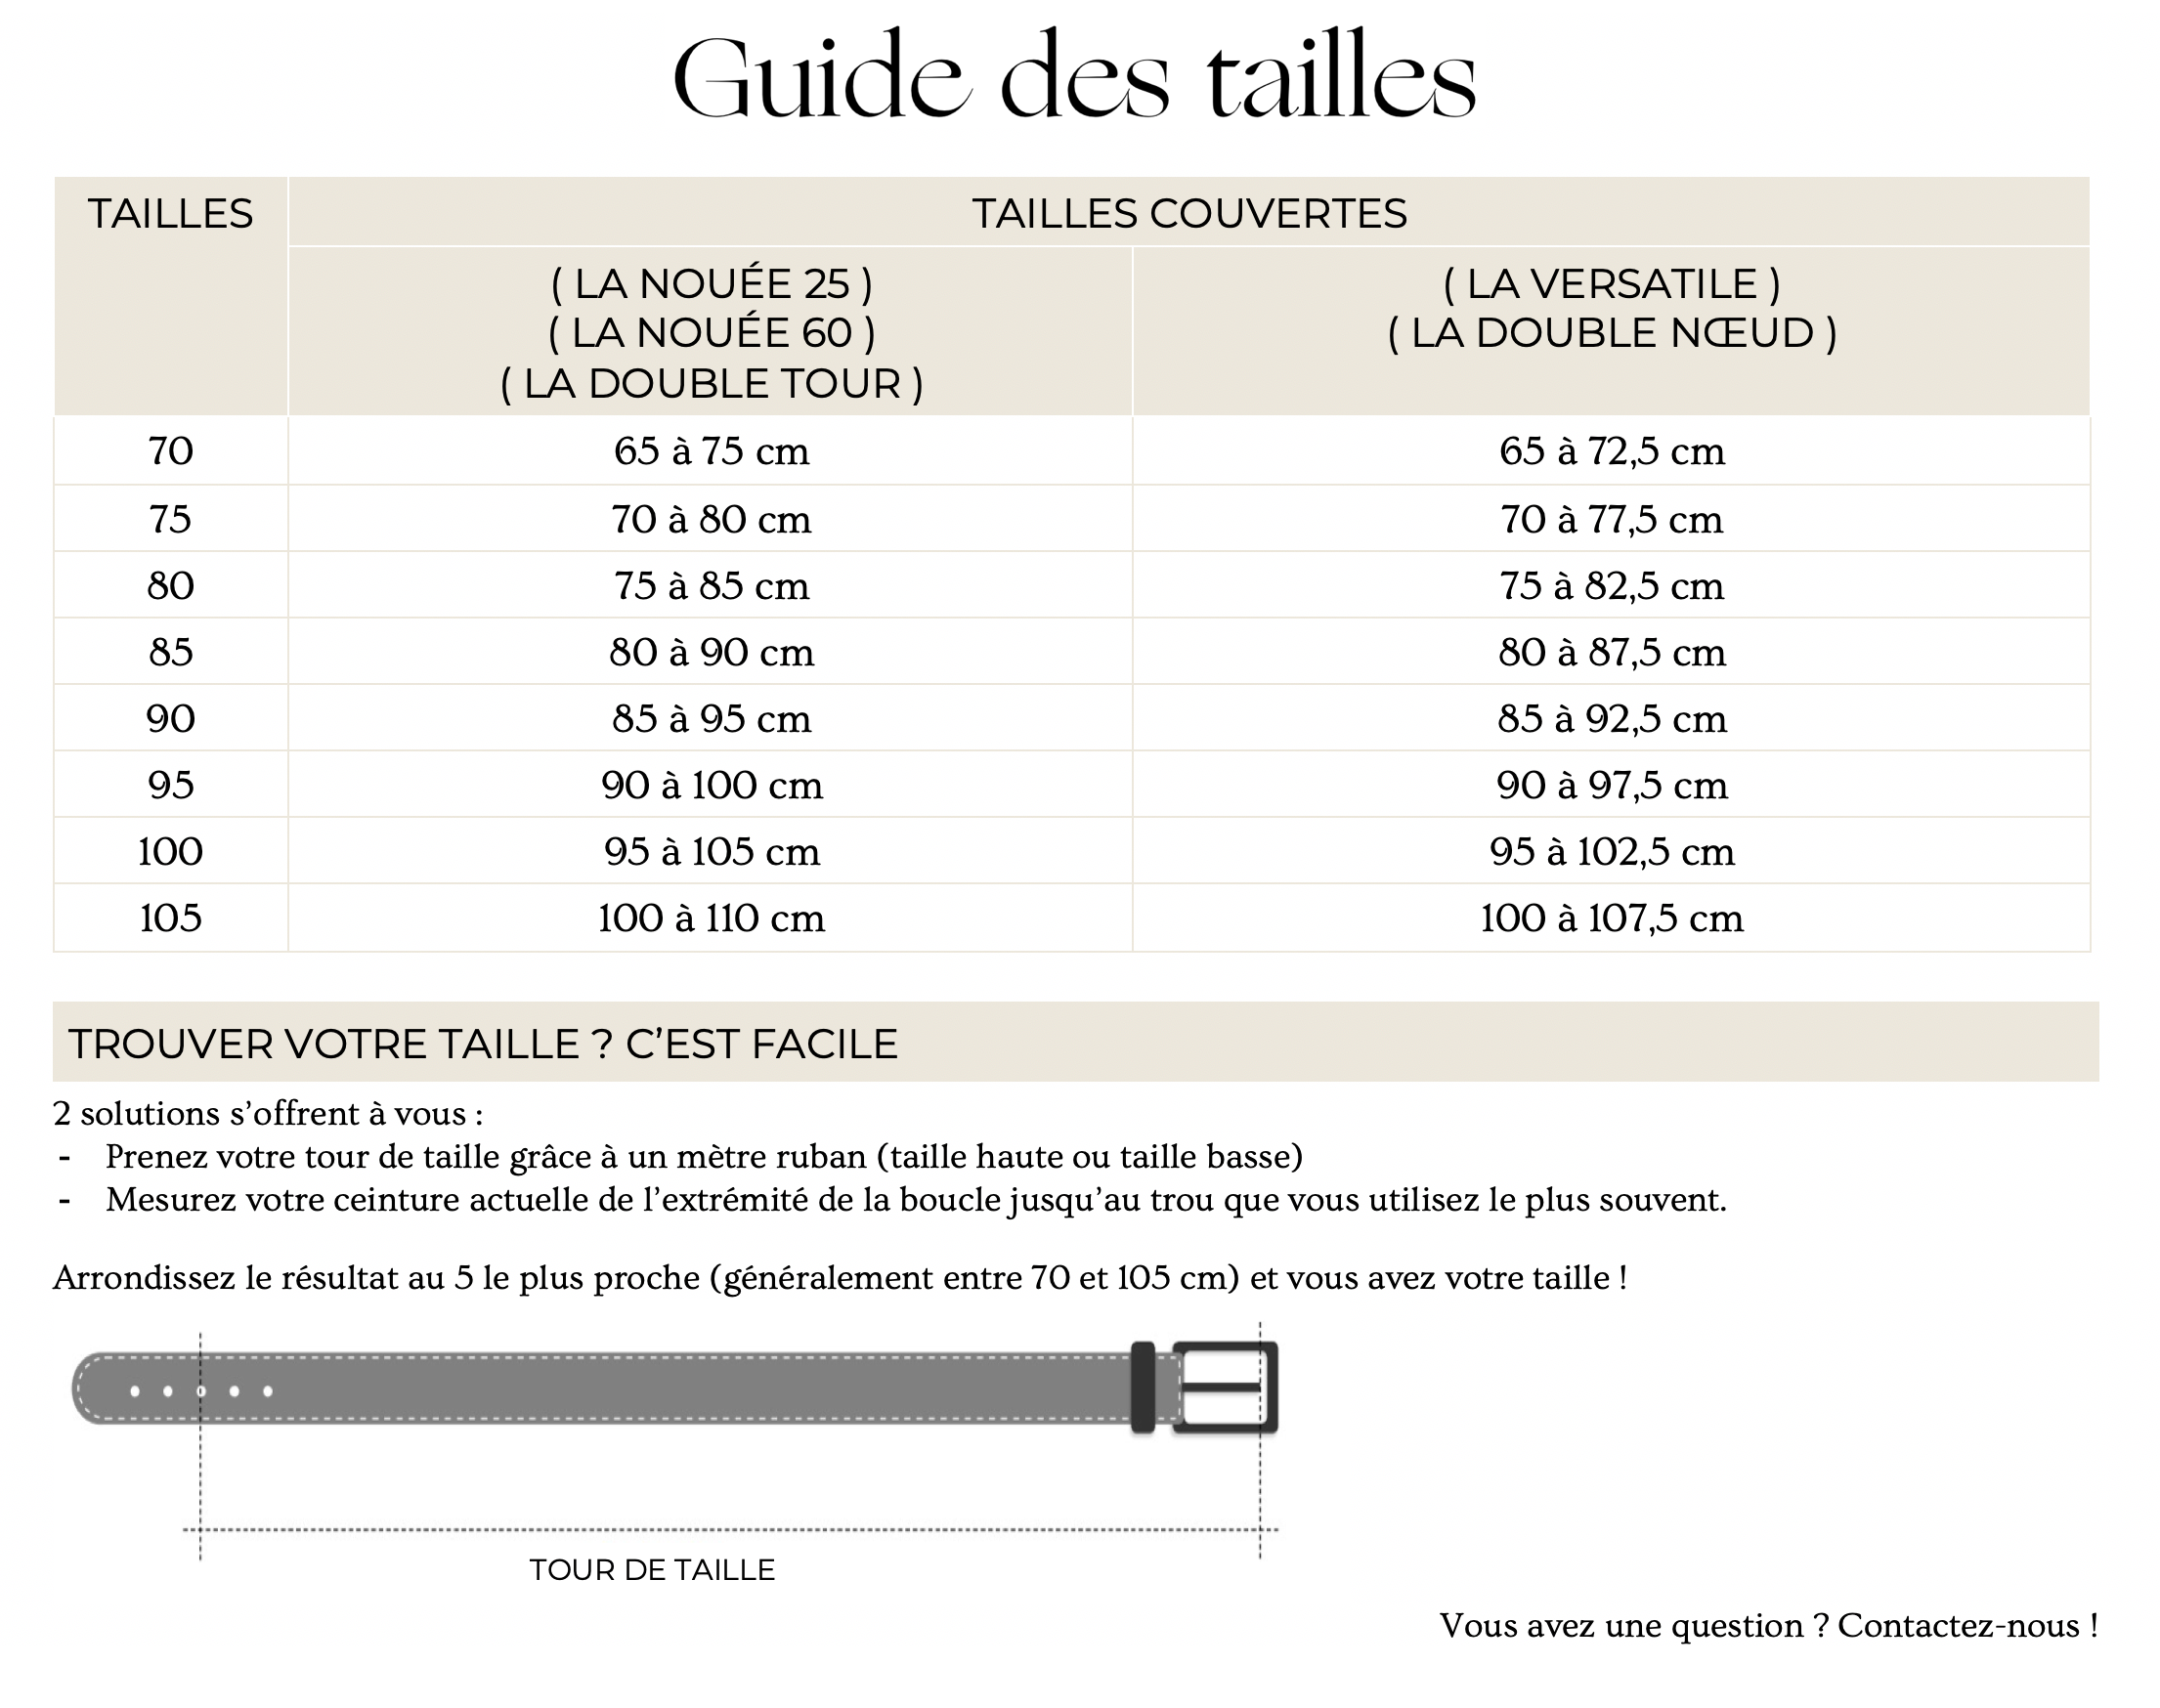 IMG - Guide des tailles